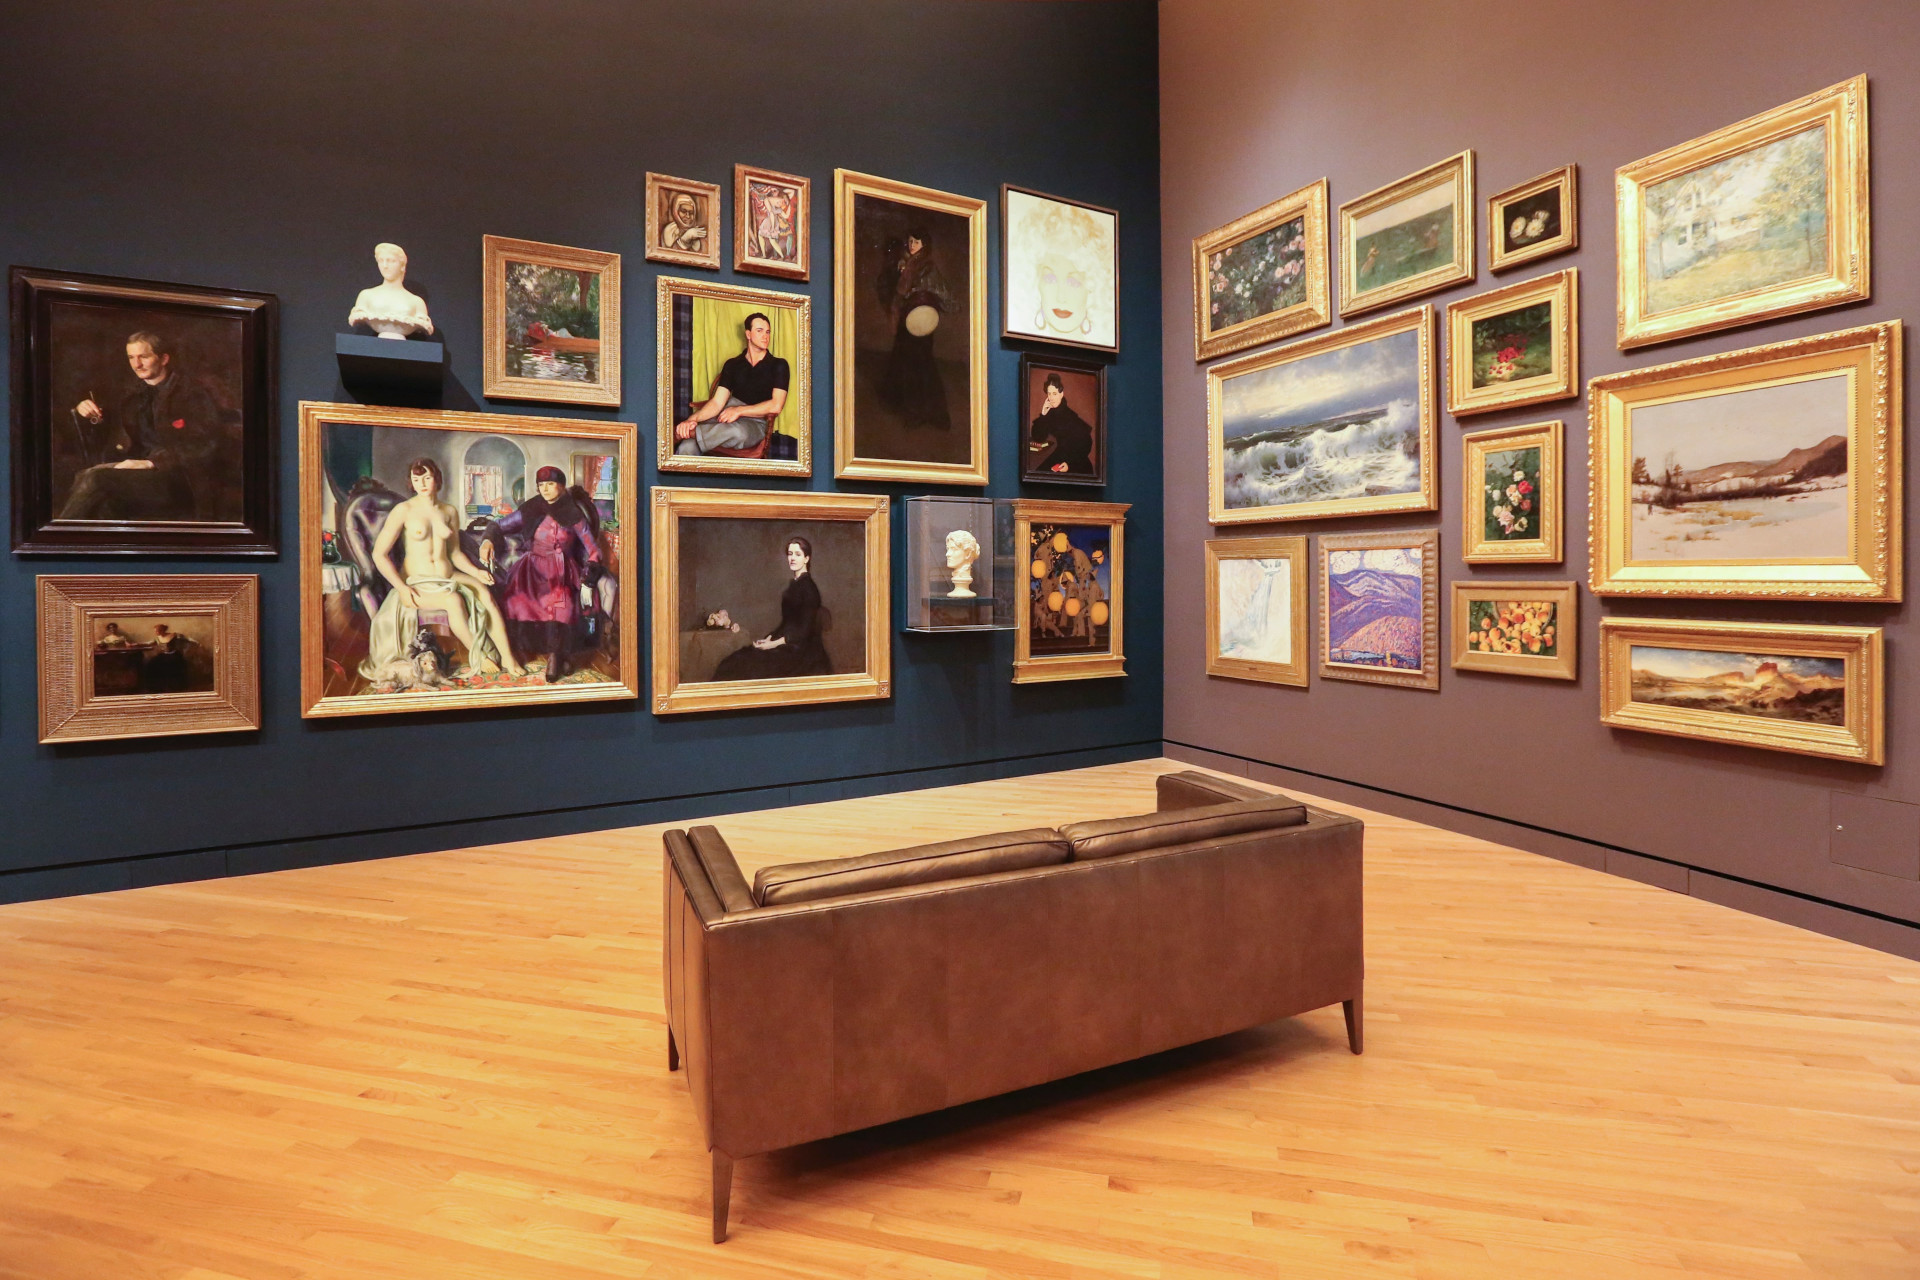 Display of several paintings in a museum